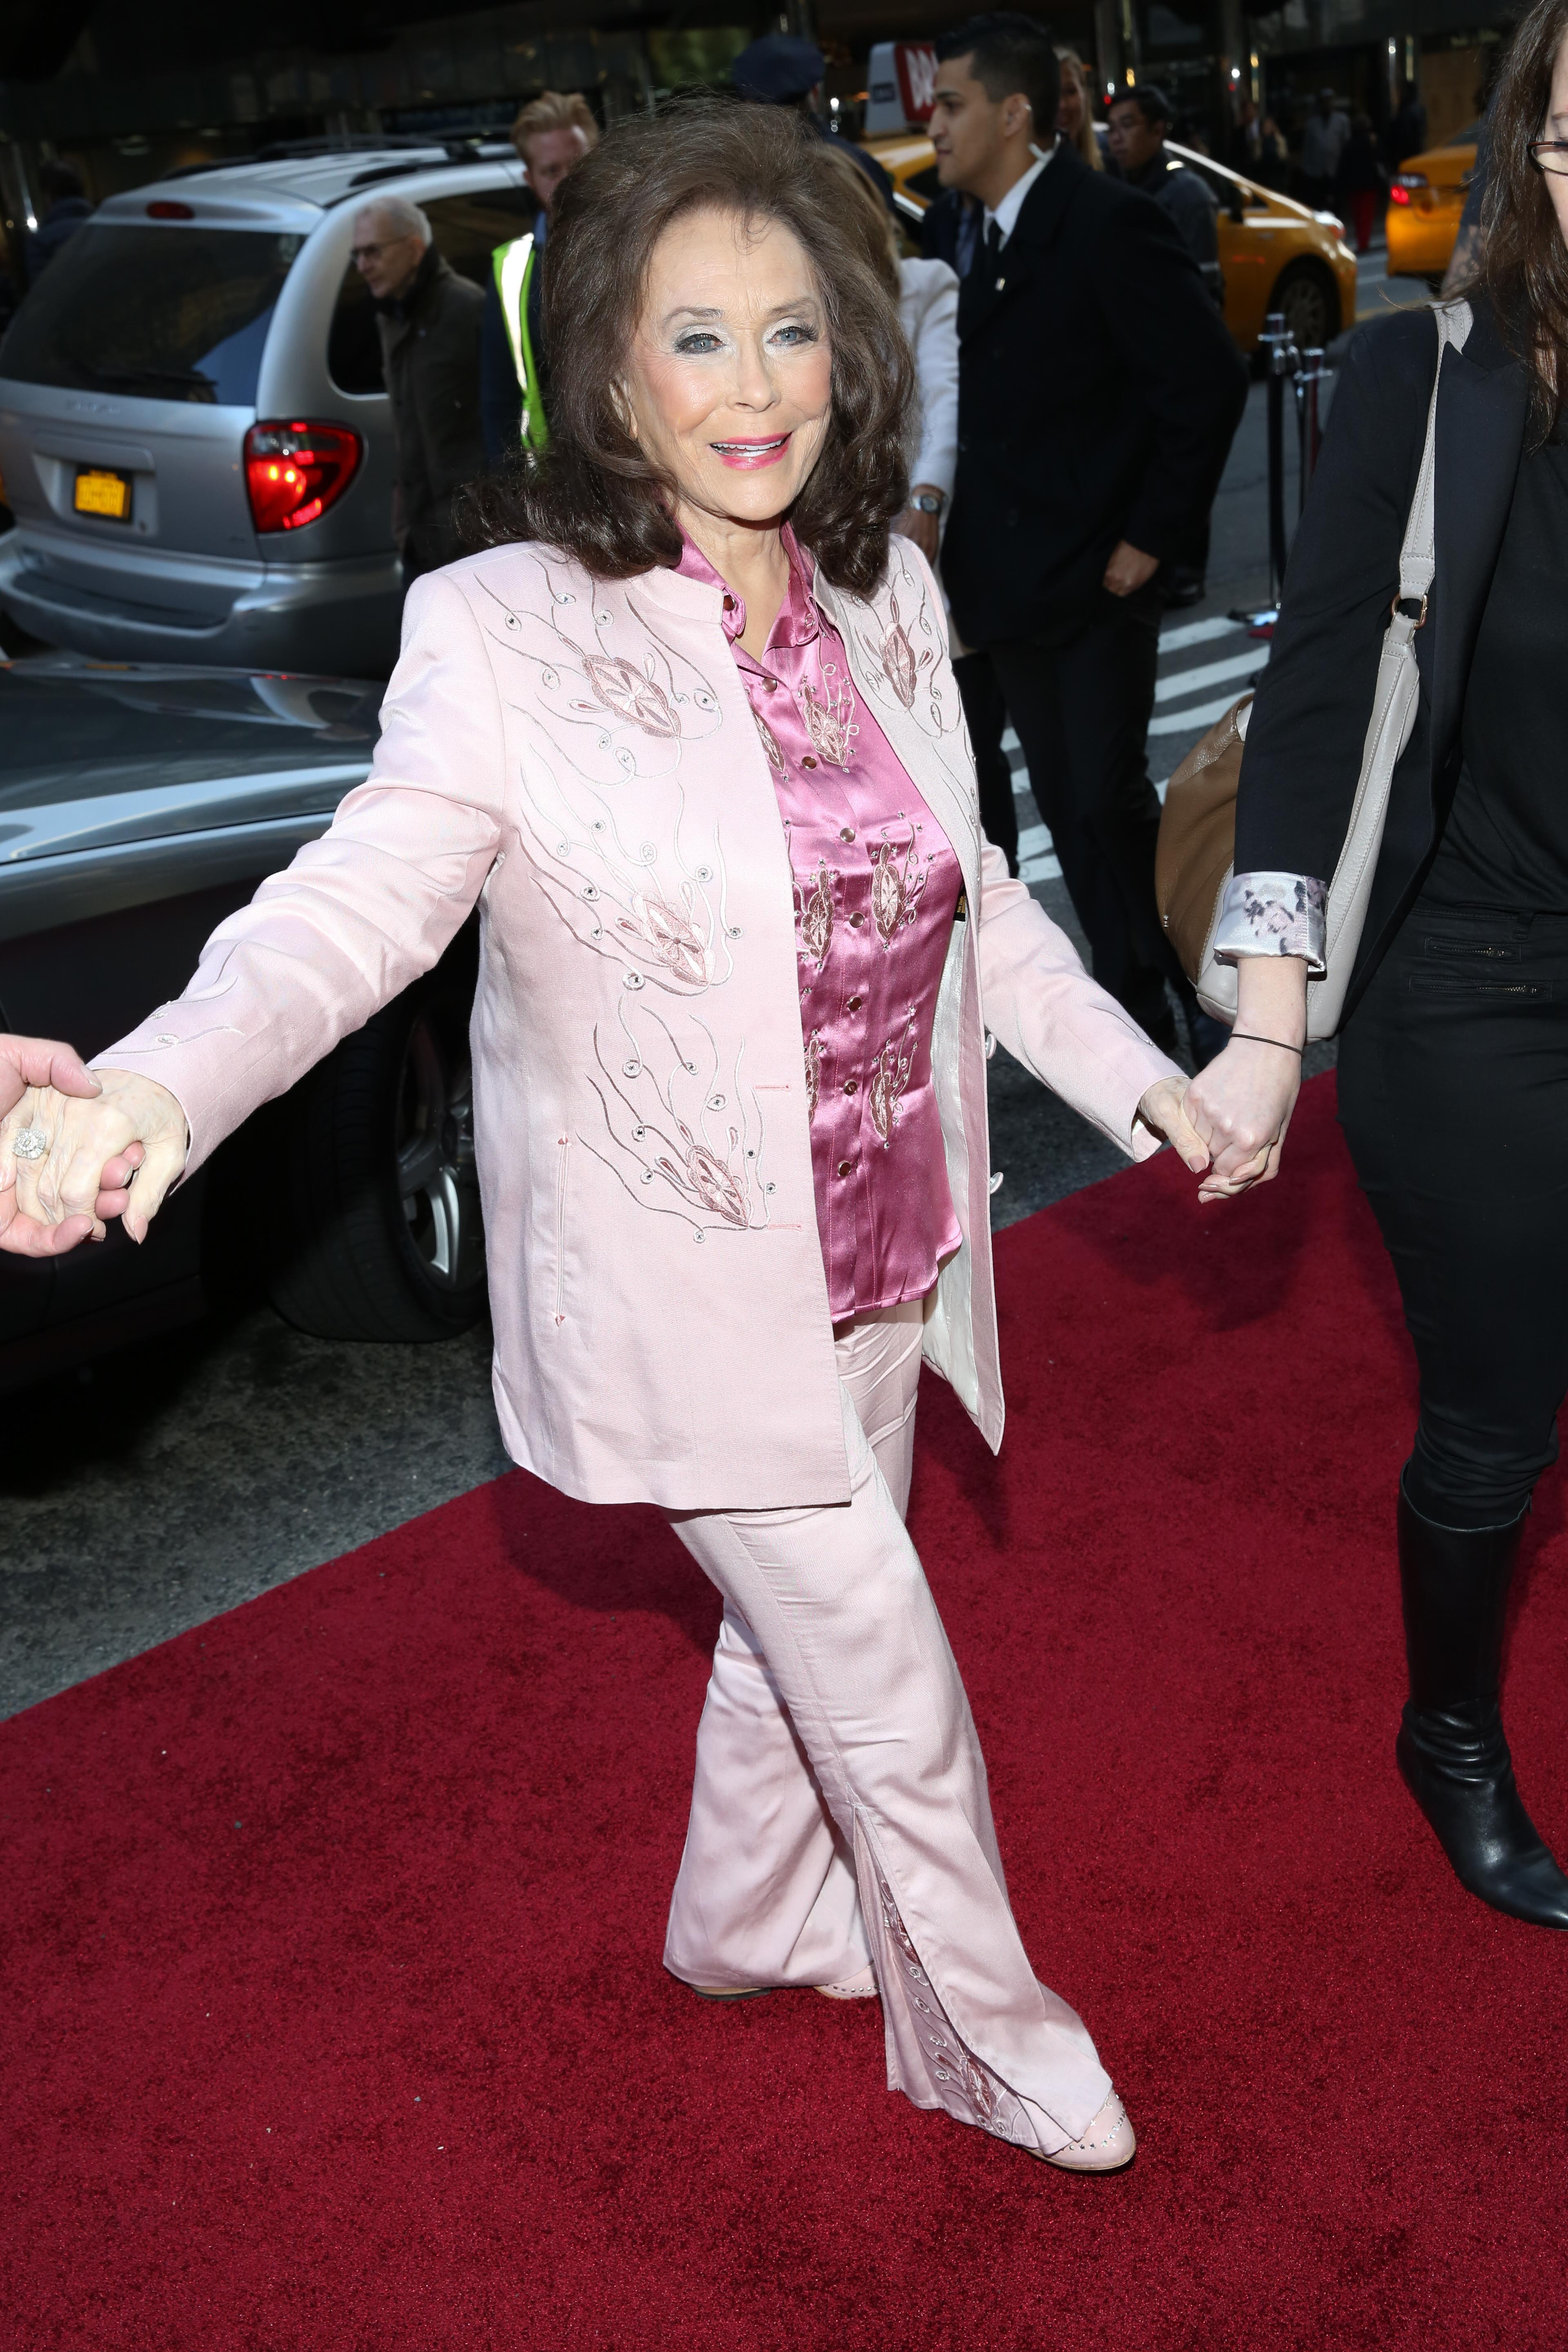 Billboard Women in Music 2015 at Cipriani 42nd Street - Arrivals  Featuring: Loretta Lynn Where: New York, New York, United States When: 11 Dec 2015 Credit: Andres Otero/WENN.com